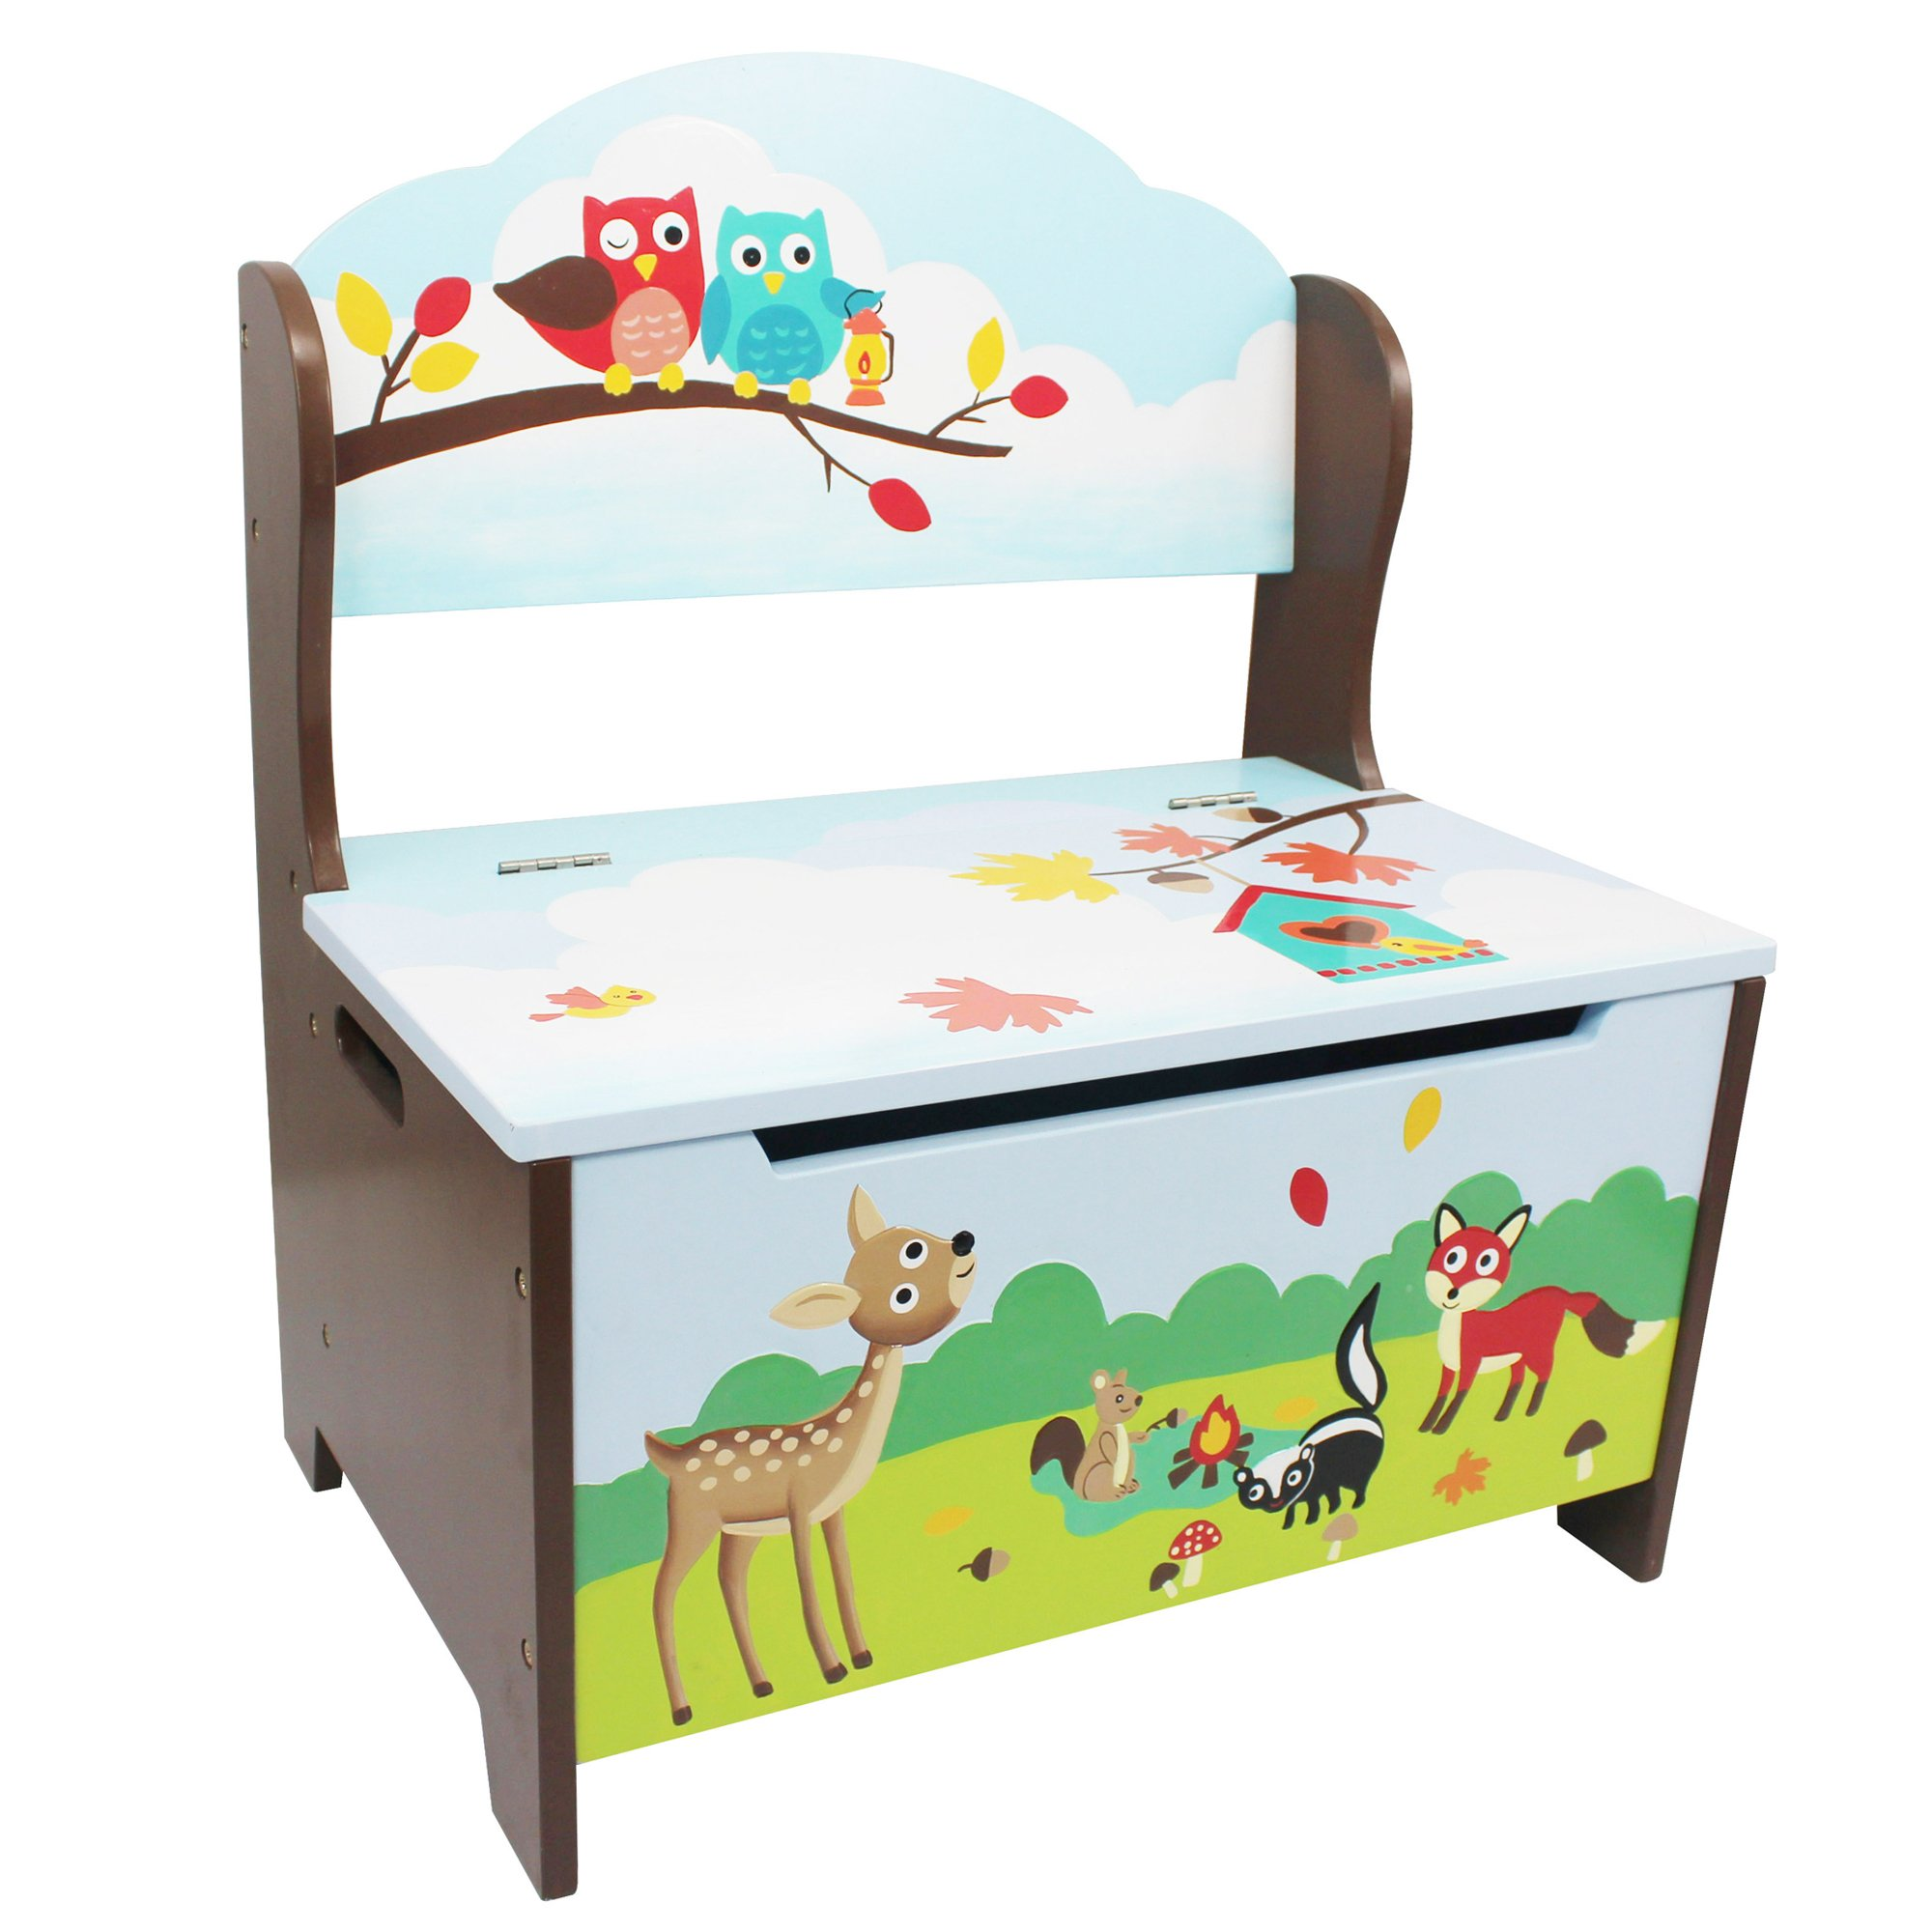 Fantasy Fields Enchanted Woodland Thematic Kids Storage Bench | Imagination Inspiring Hand Crafted & Hand Painted Details | Non-Toxic, Lead Free Water-based Paint